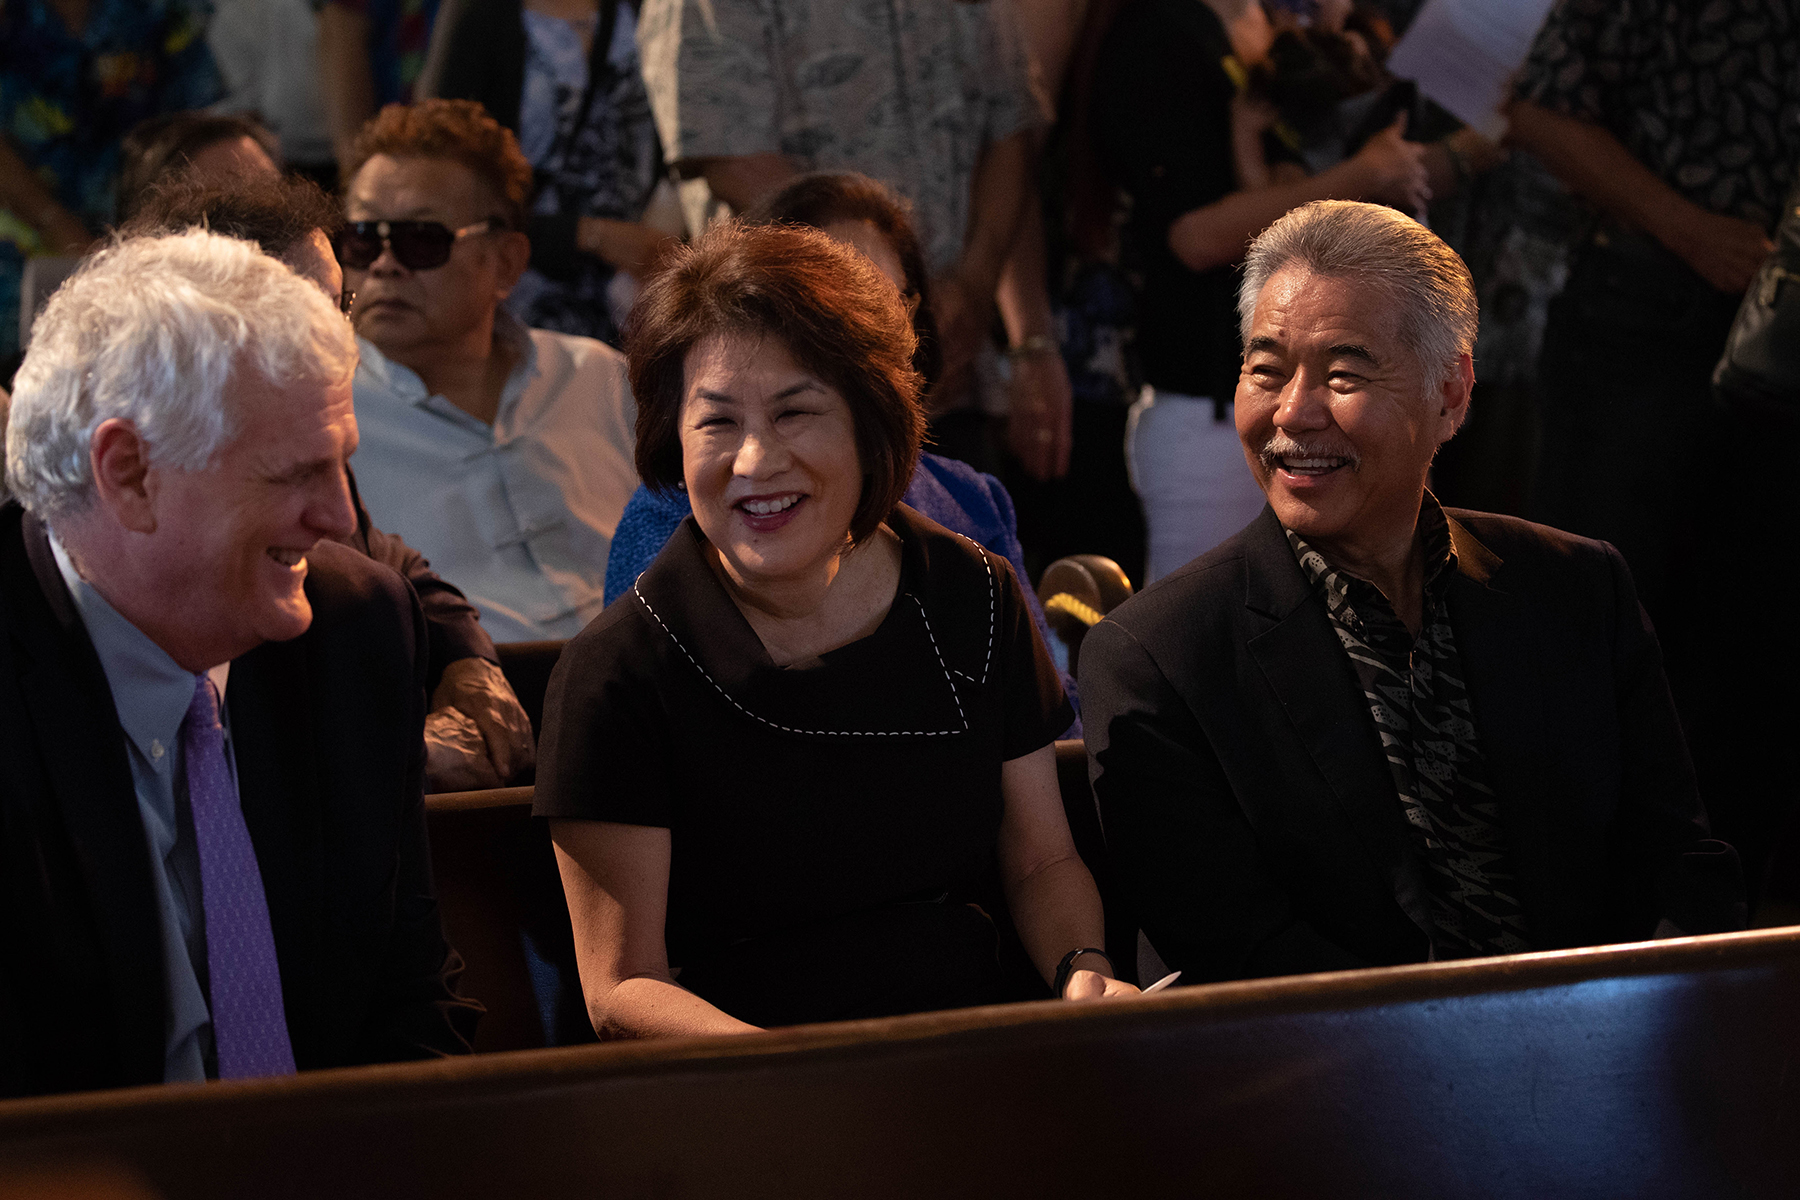 <p>Gov. David Ige and wife, Dawn Amano-Ige, share a lighter moment with Hawaii Chief Justice Mark Recktenwald, at left, before the memorial service begins.</p>